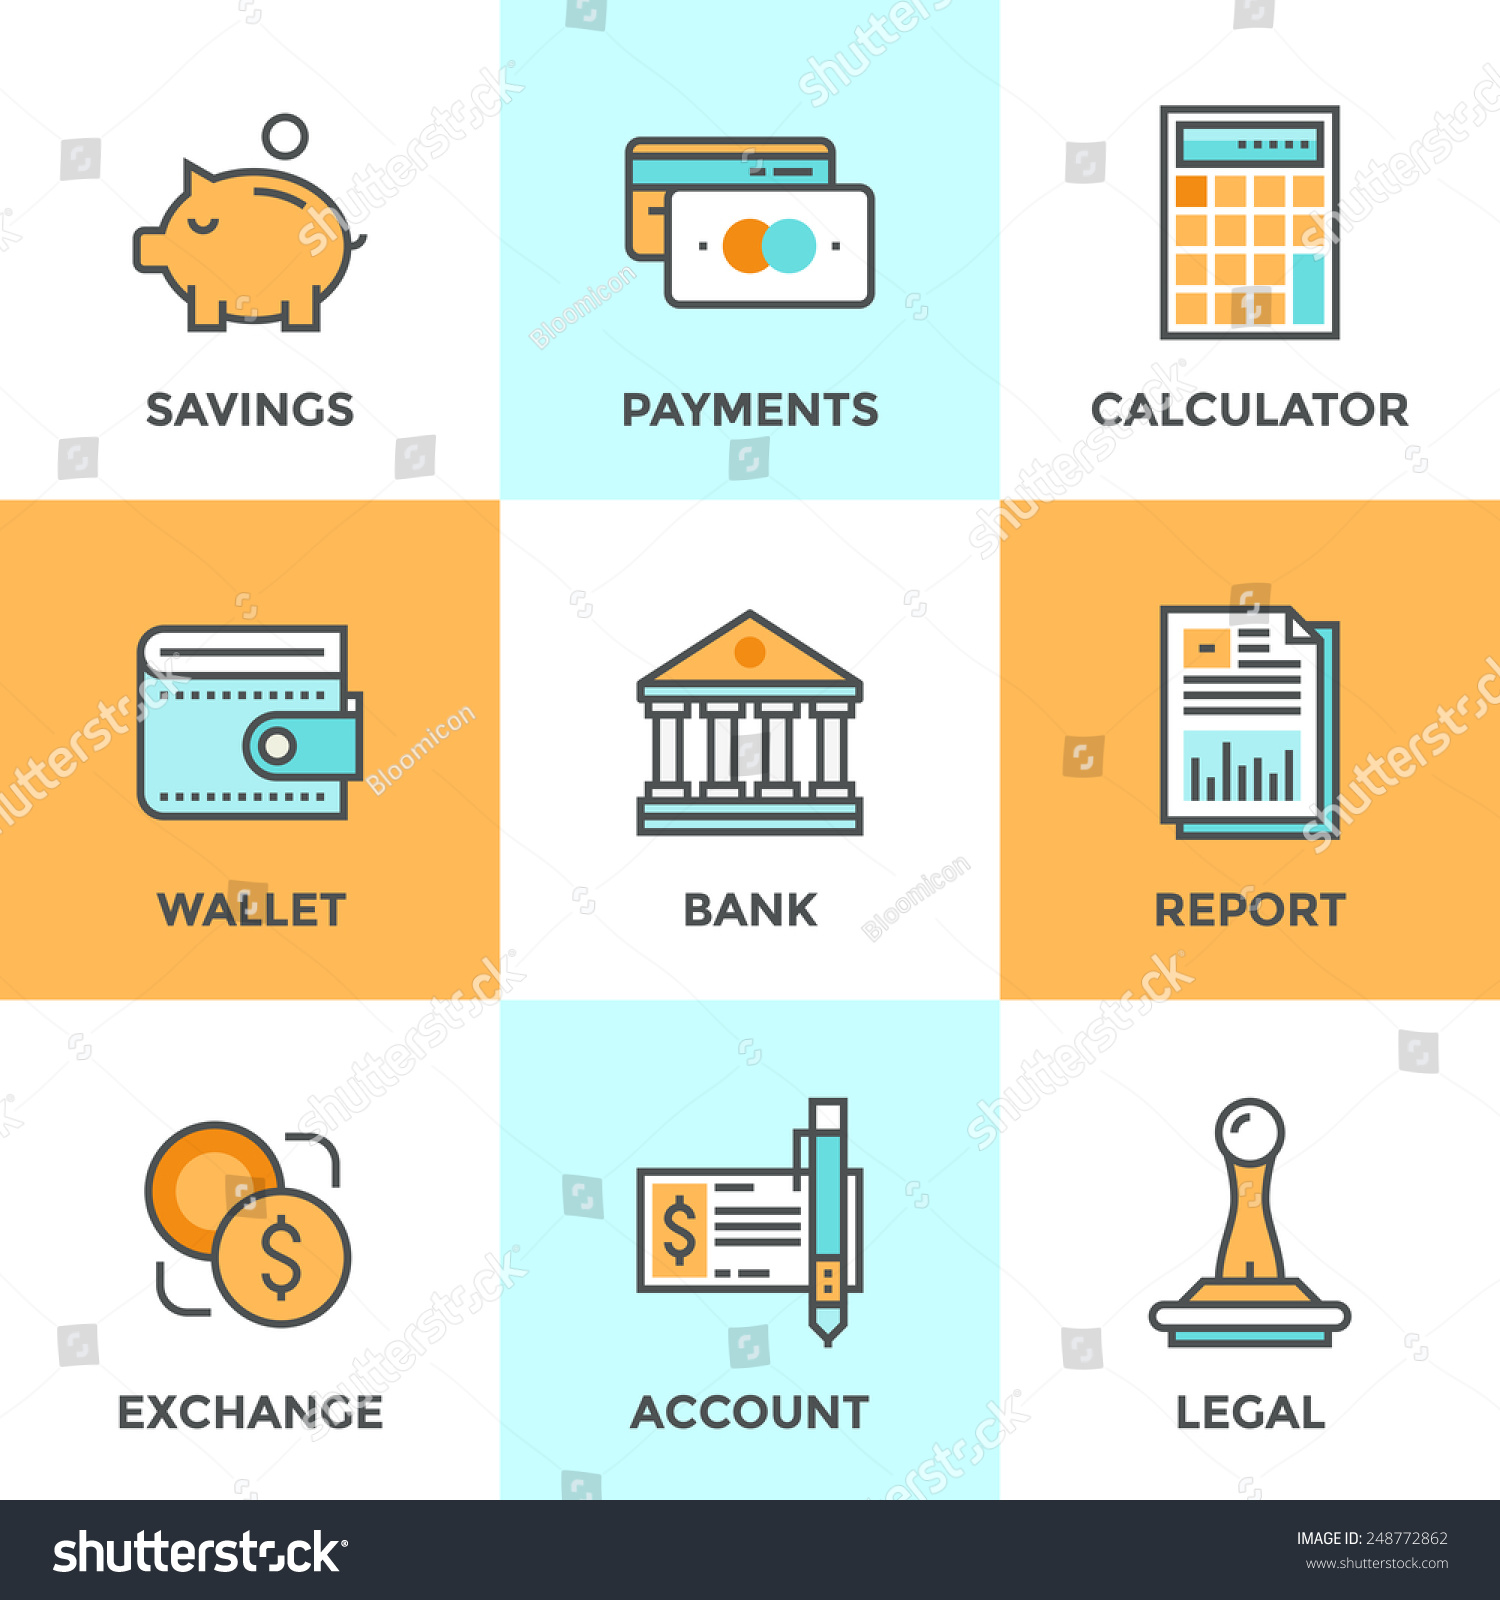 concept of financial services pdf